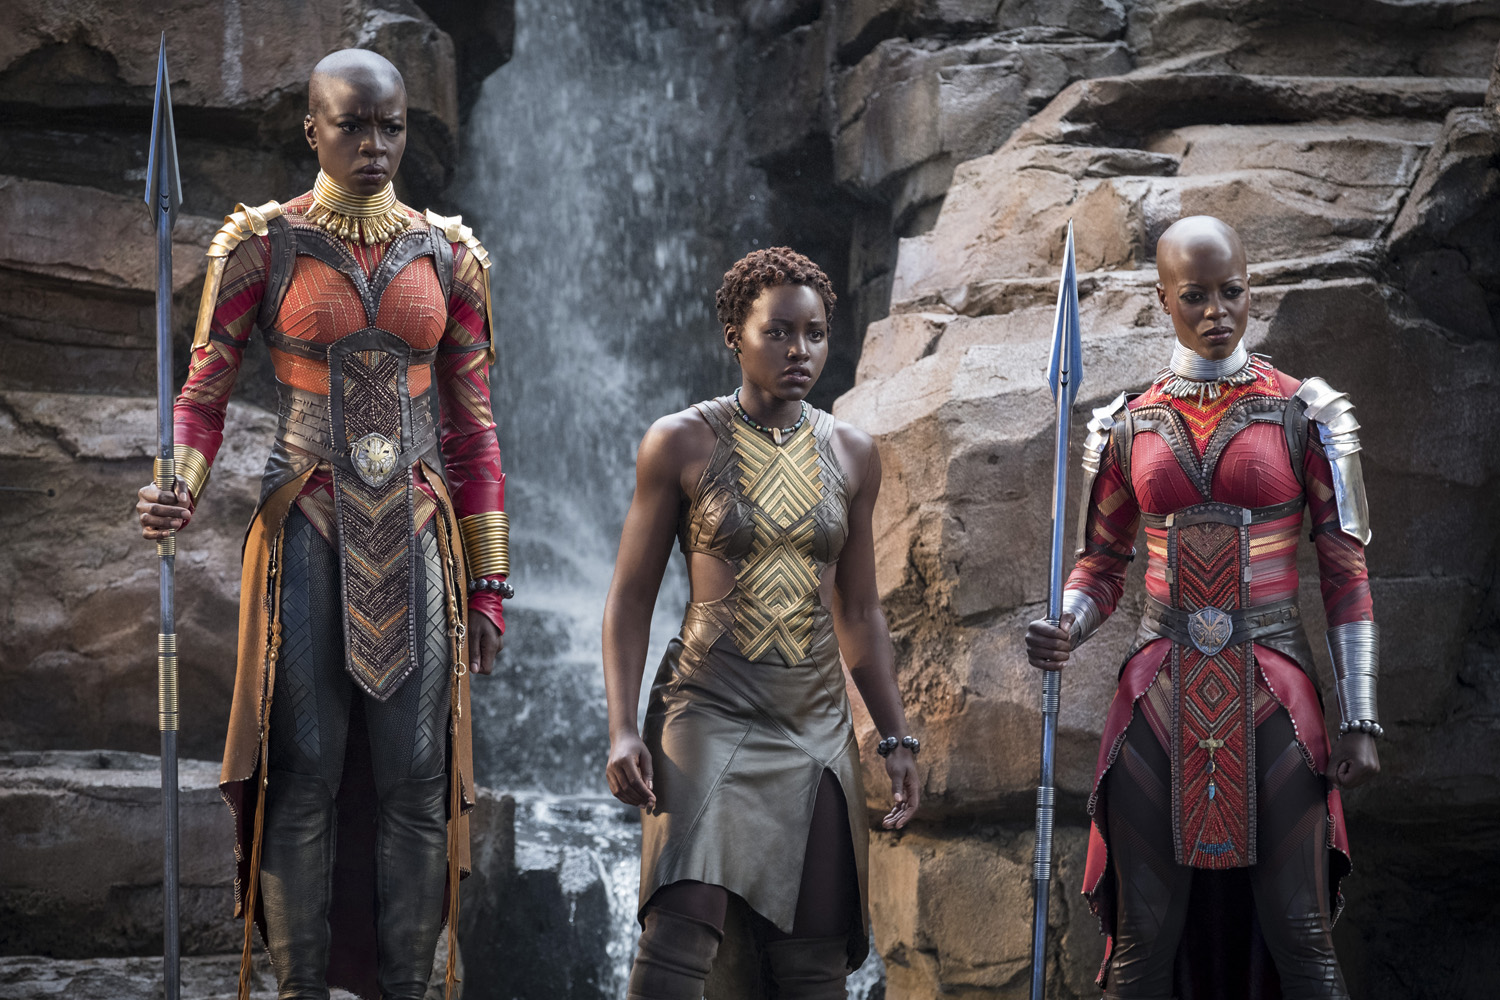 BLACK PANTHER IS HIGHEST GROSSING SUPERHERO MOVIE OF ALL TIME